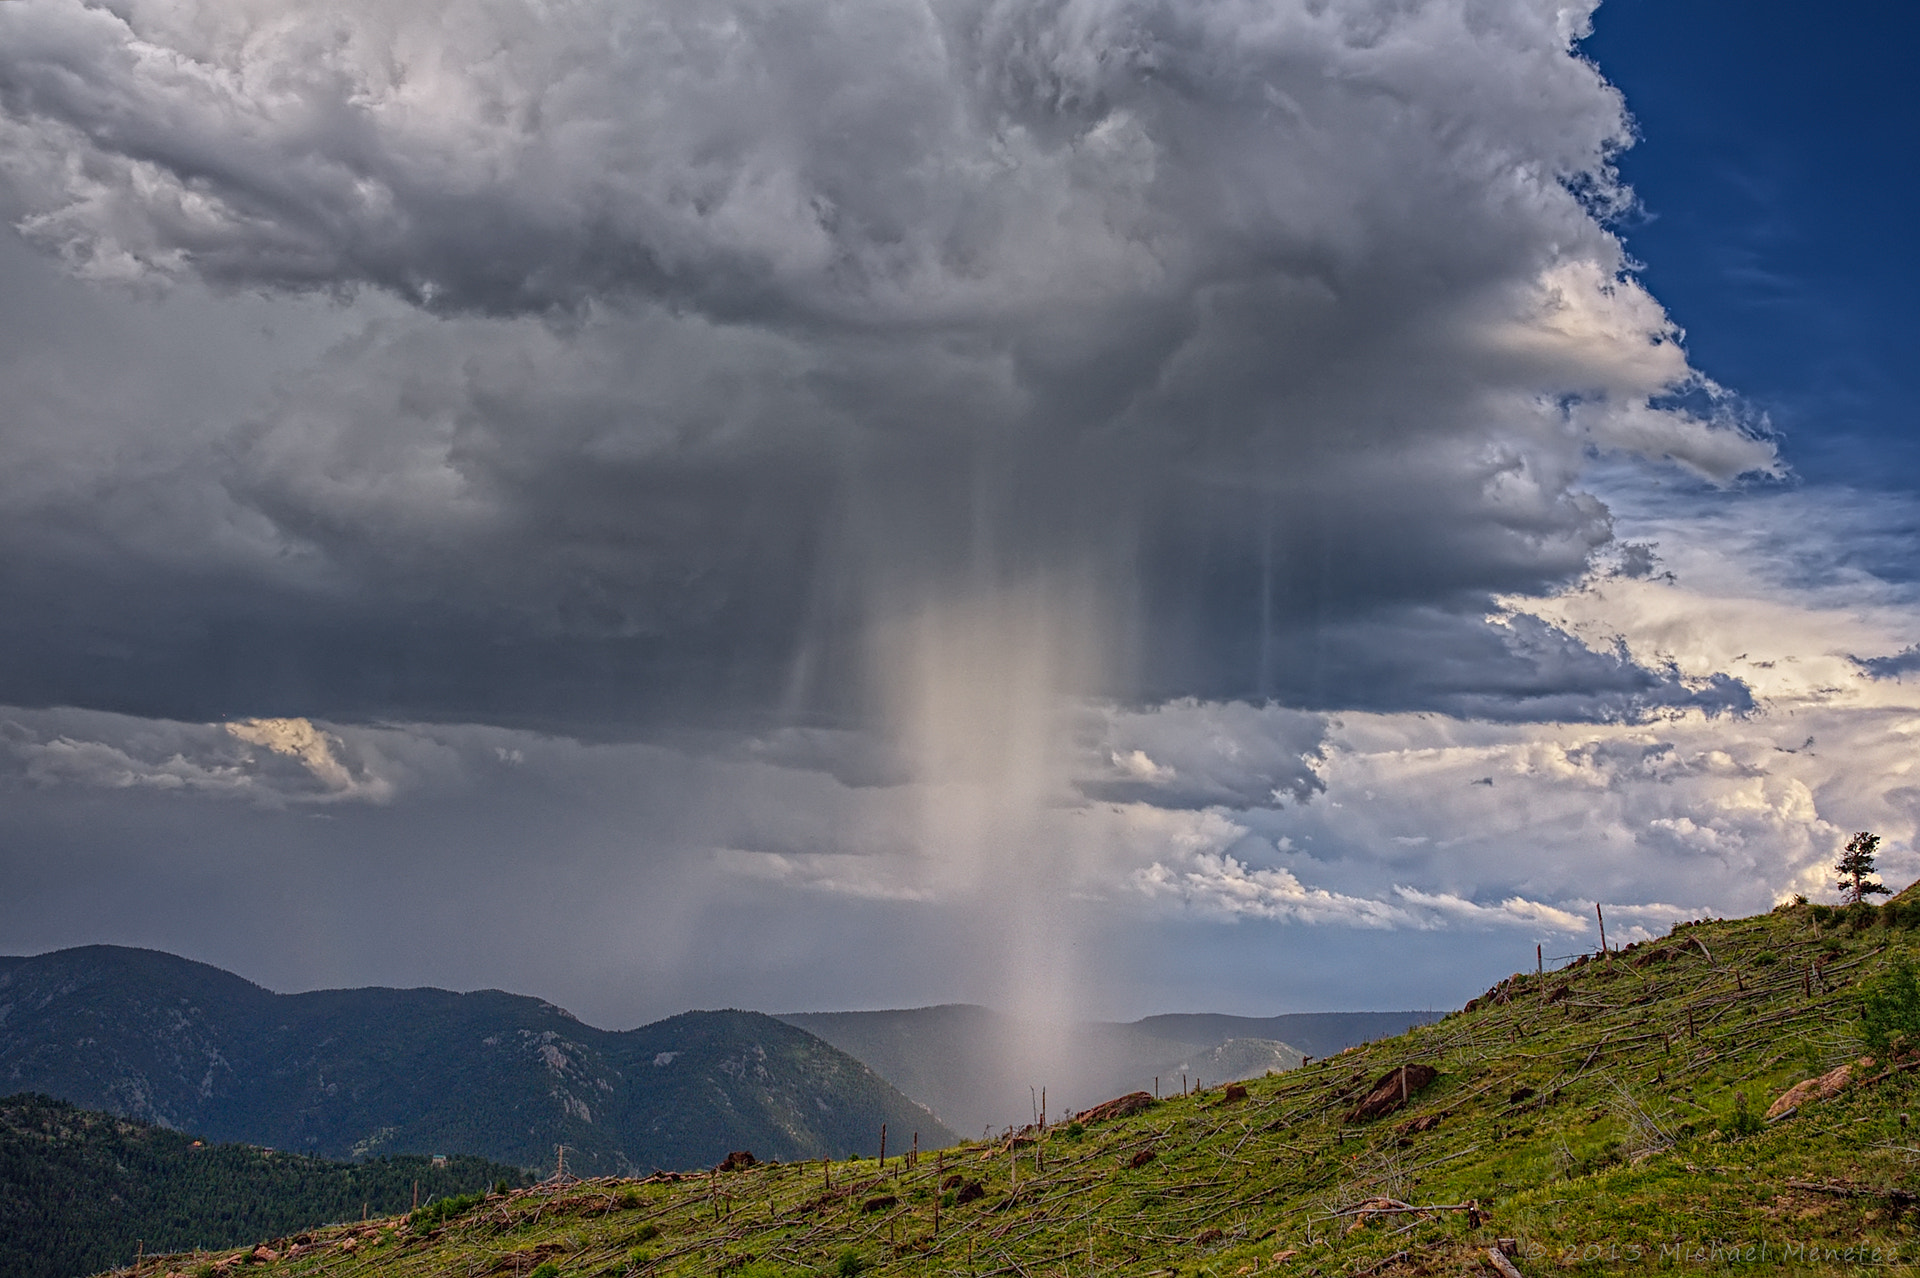 Photograph A Waterfall in the Sky by Michael Menefee on 500px